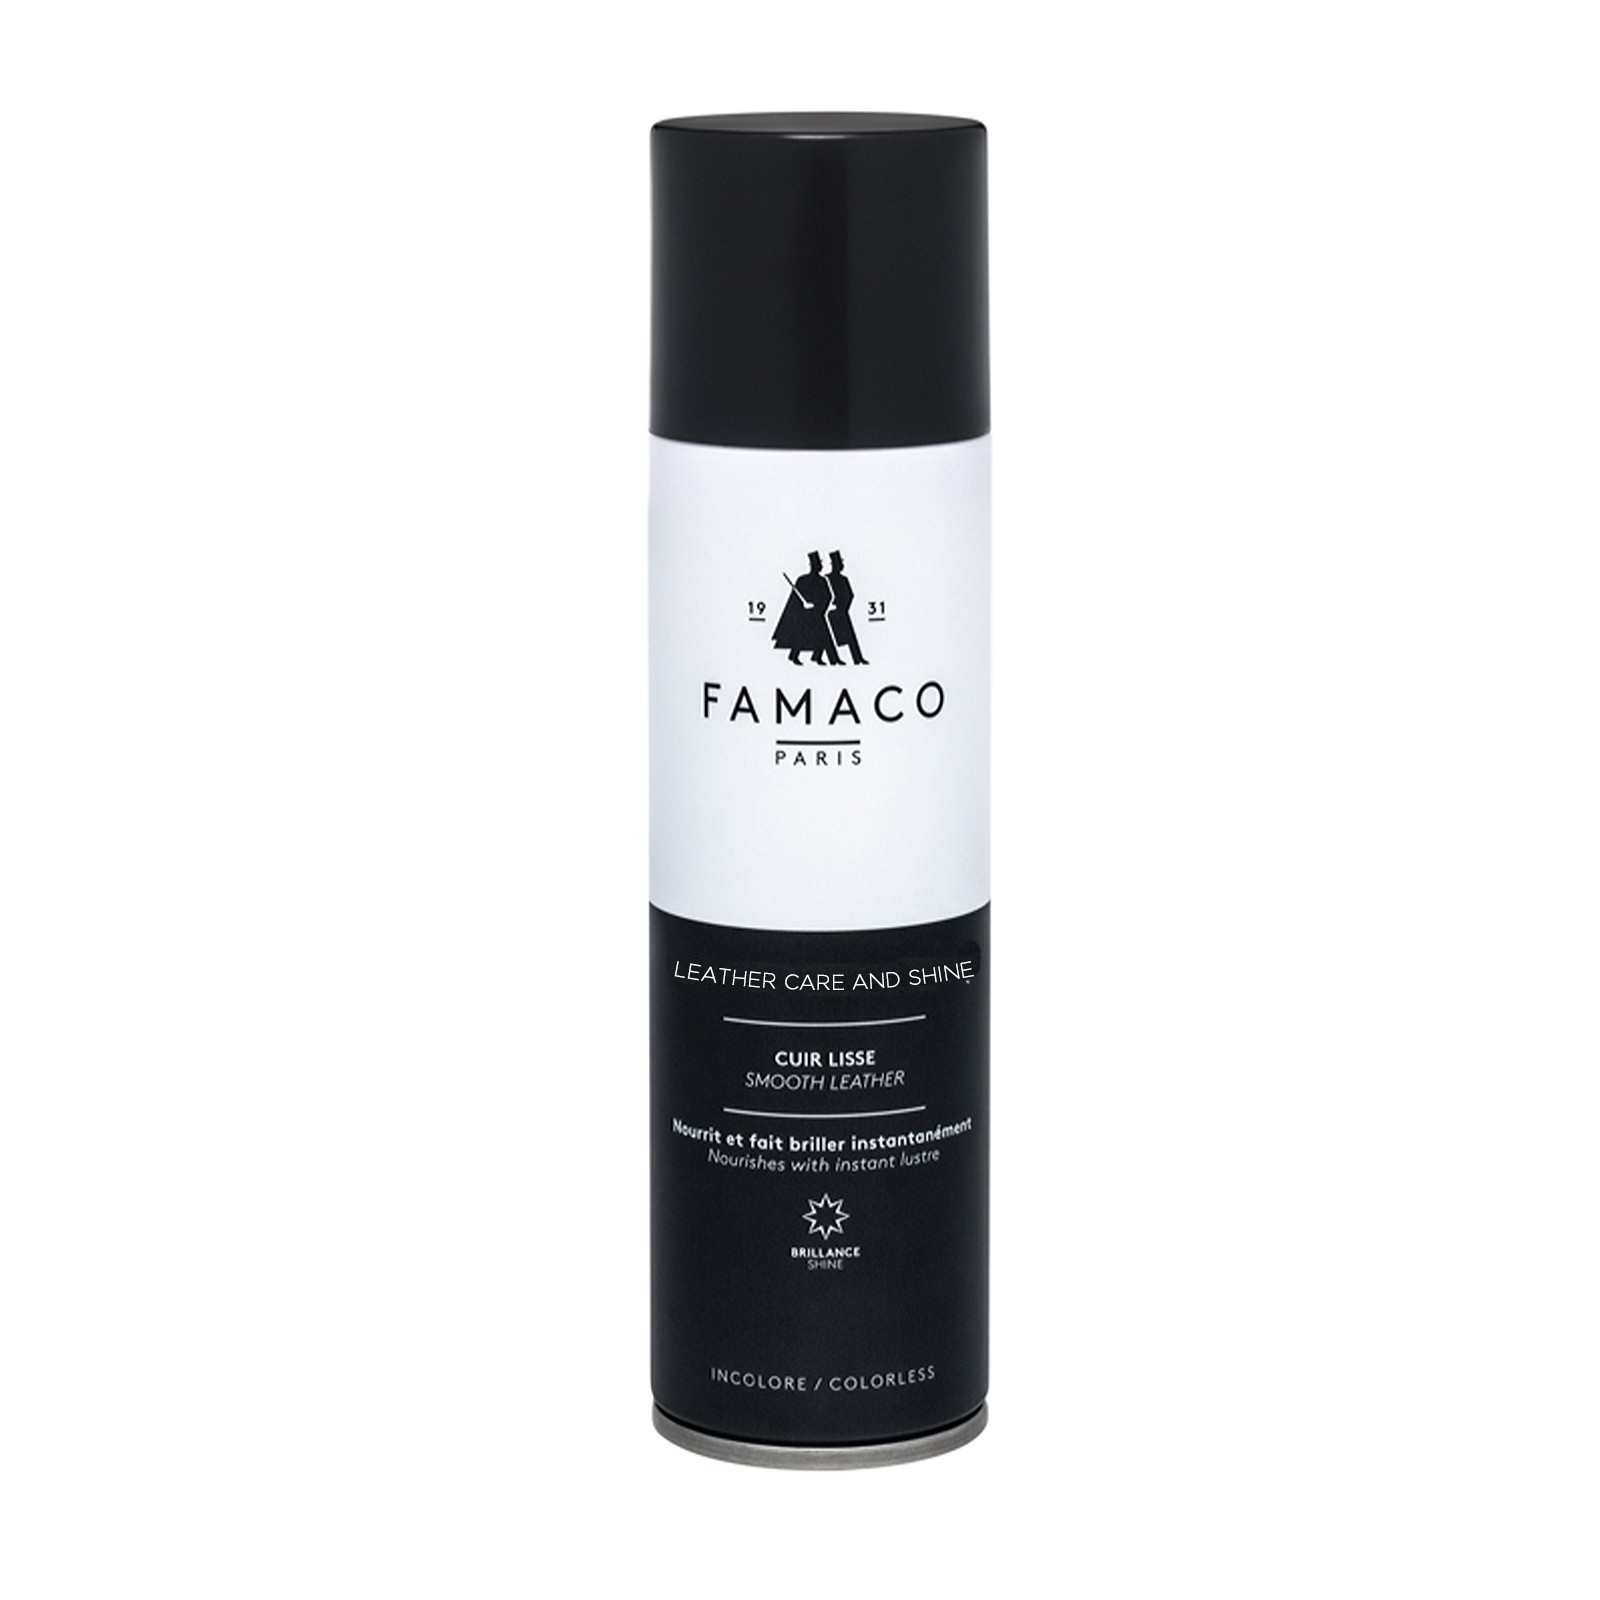 Famaco Leather Care And Shine (clear) 250ml Spray